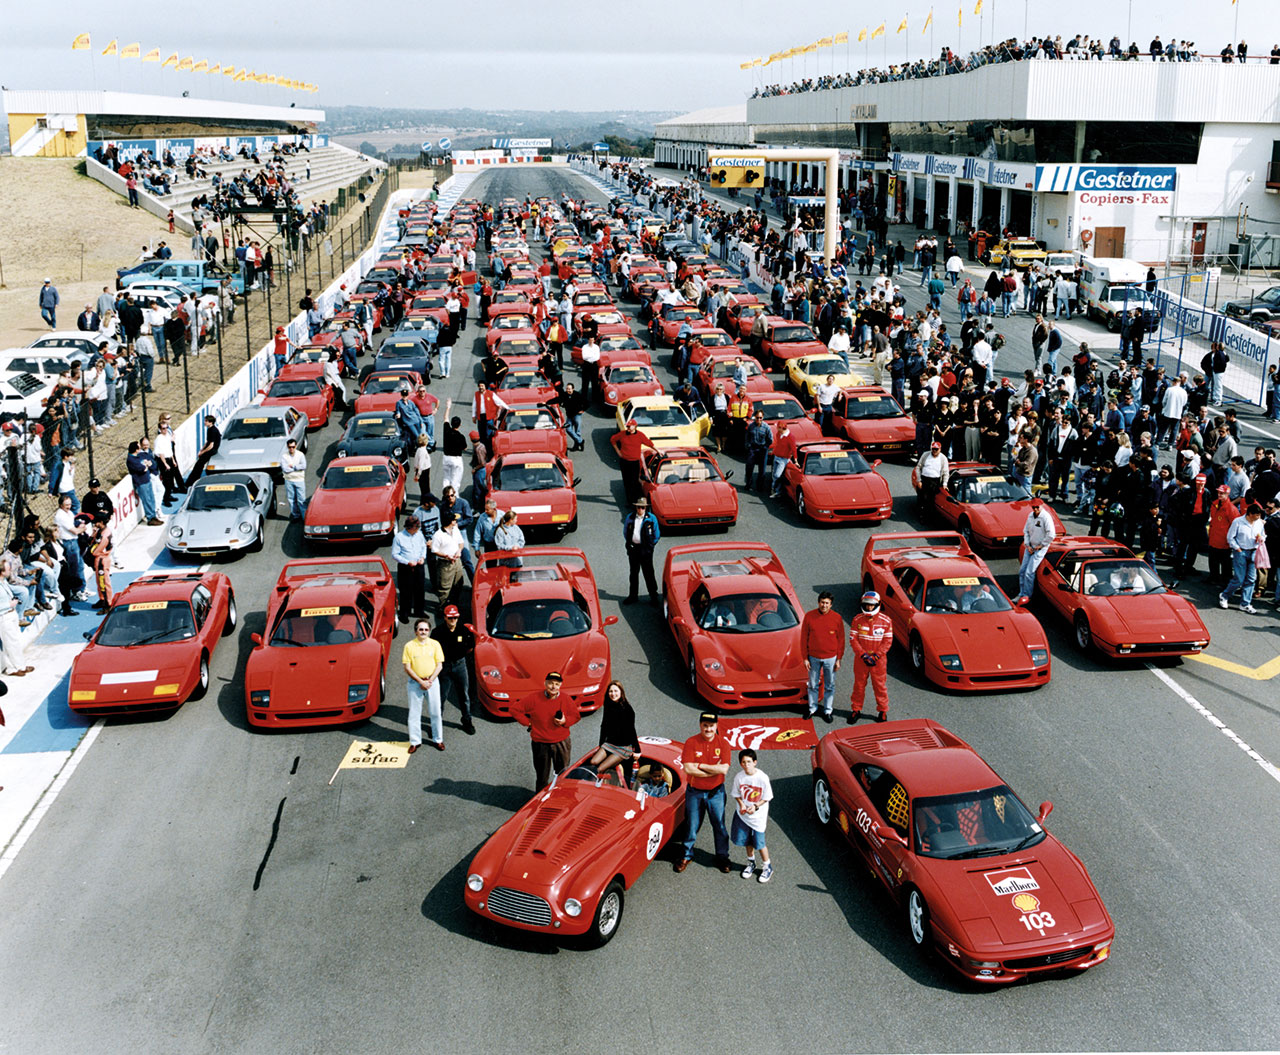 Rally of the South African Ferrari Clubs on the Kyalami Circuit for the 50th Anniversary Celebration, 1997.Photo courtesy of Ferrari.